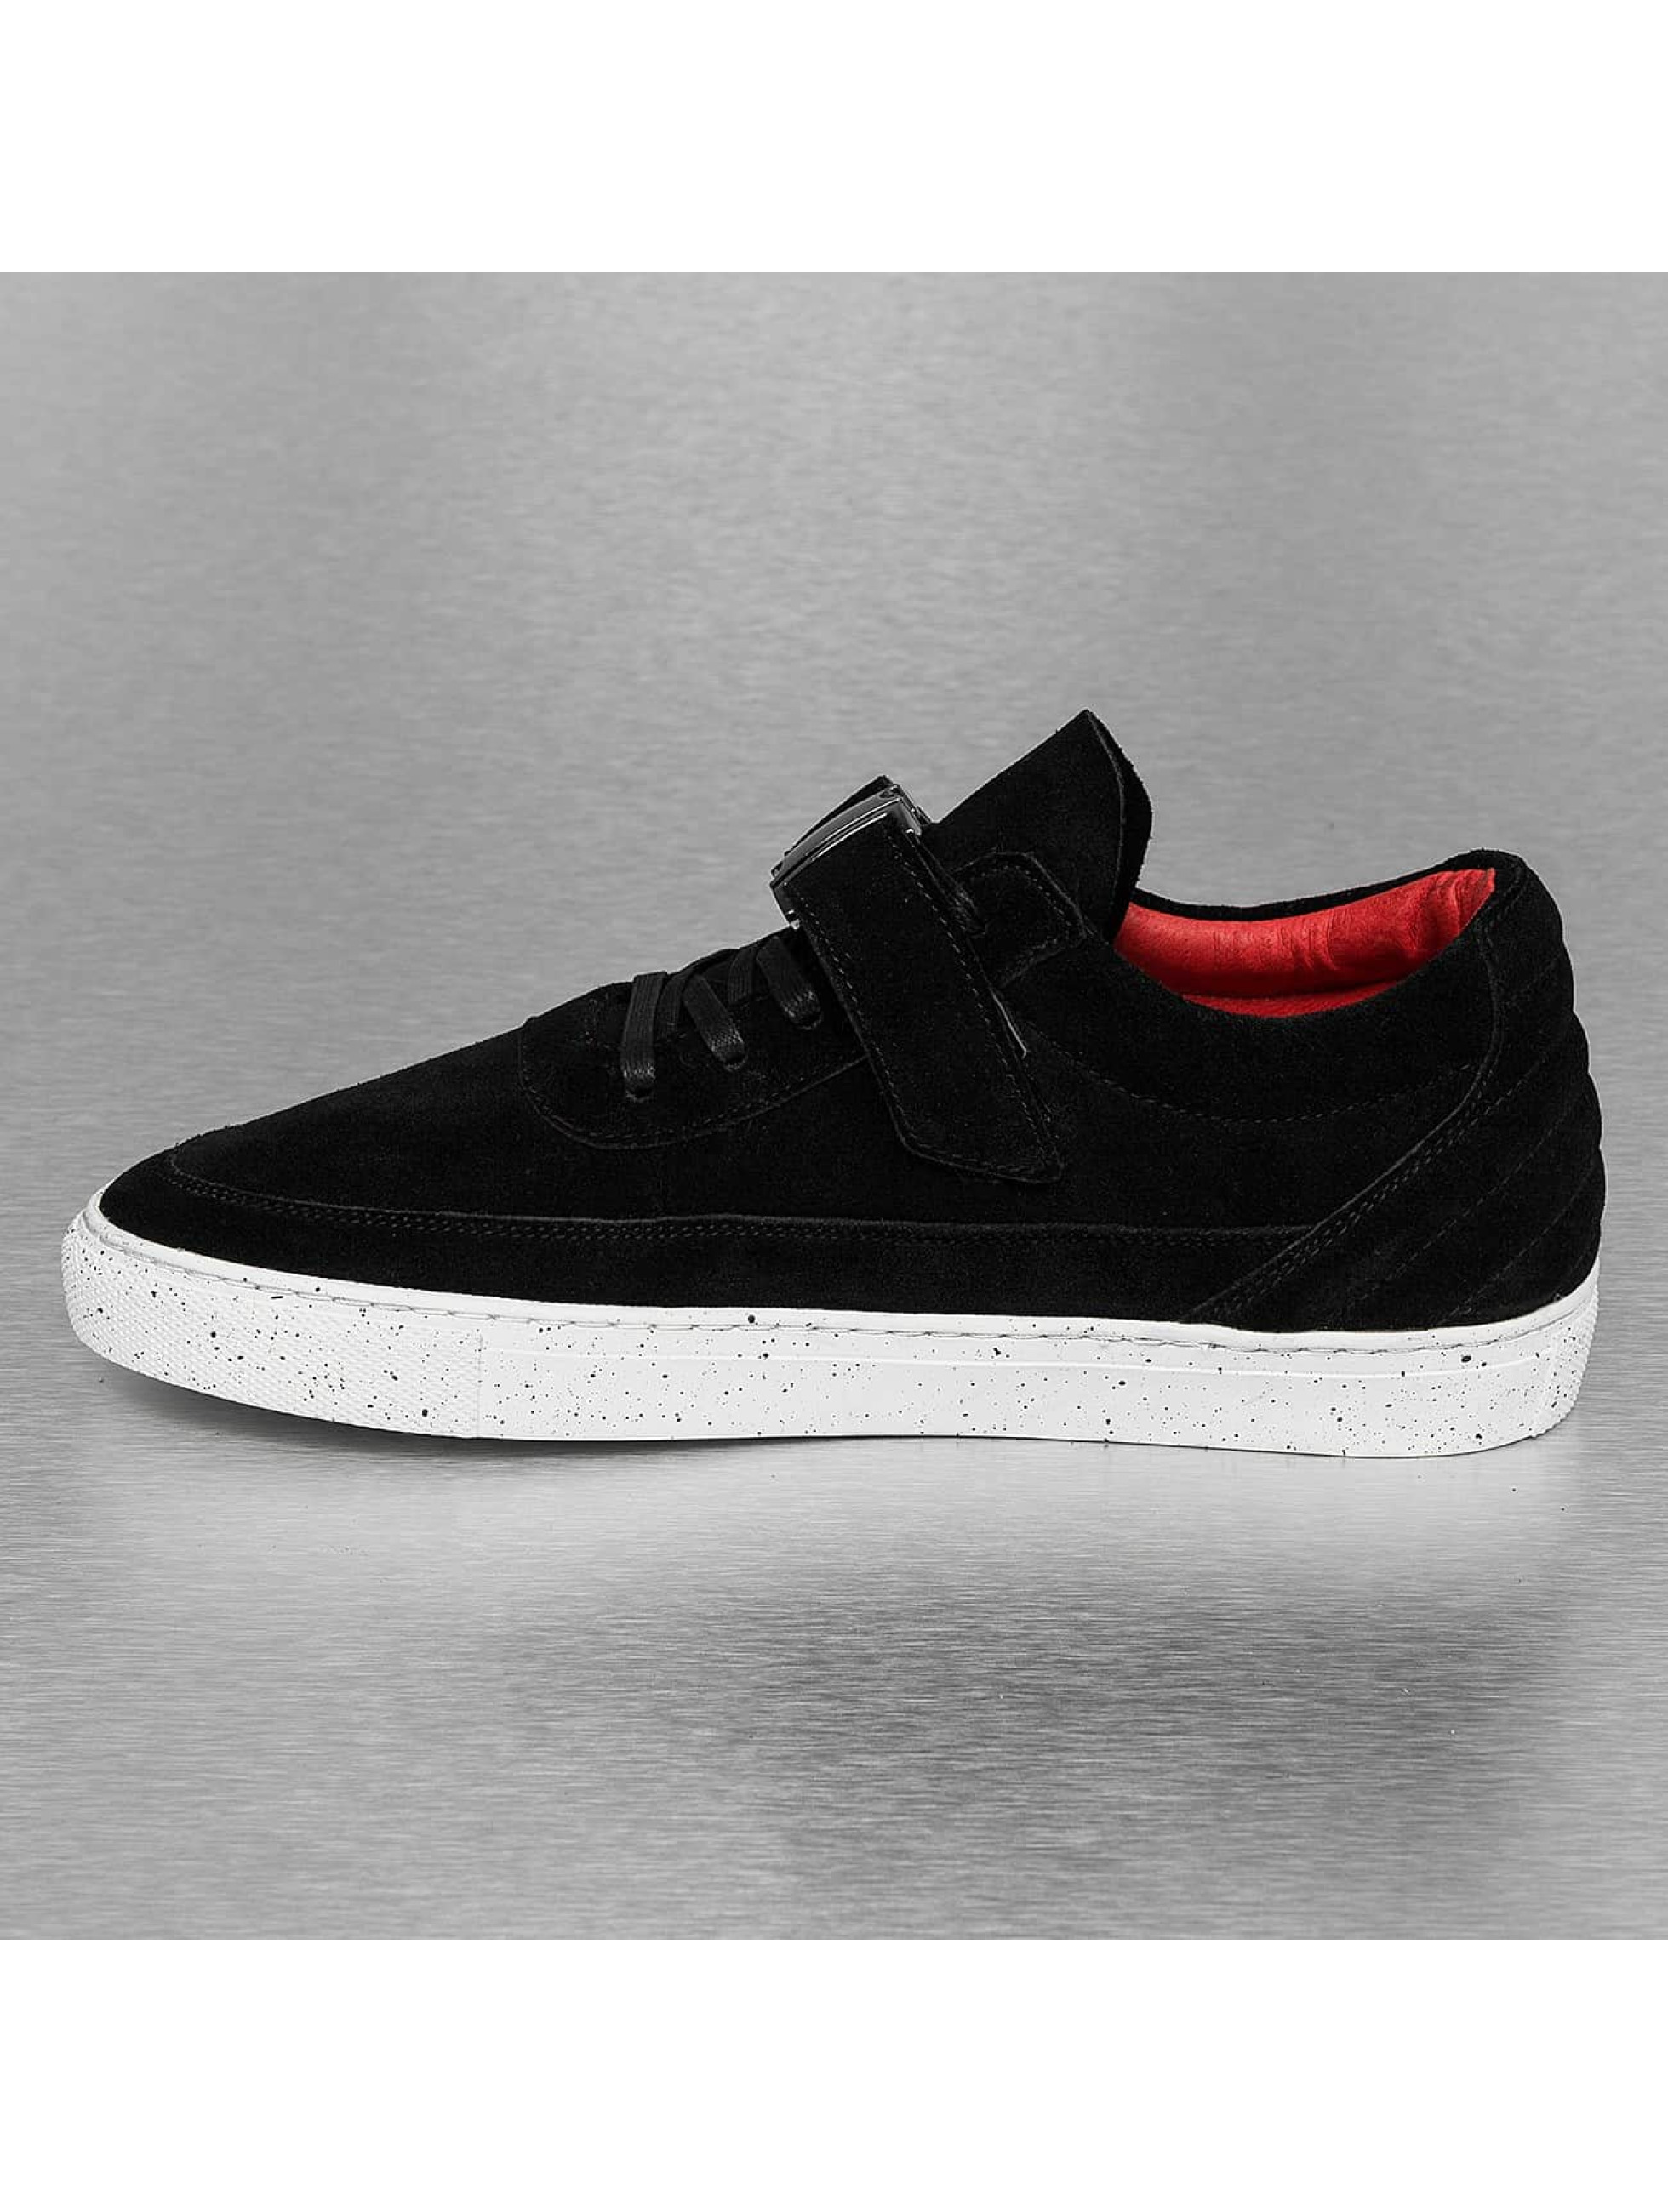 Cayler & Sons Sneakers Chutoro black